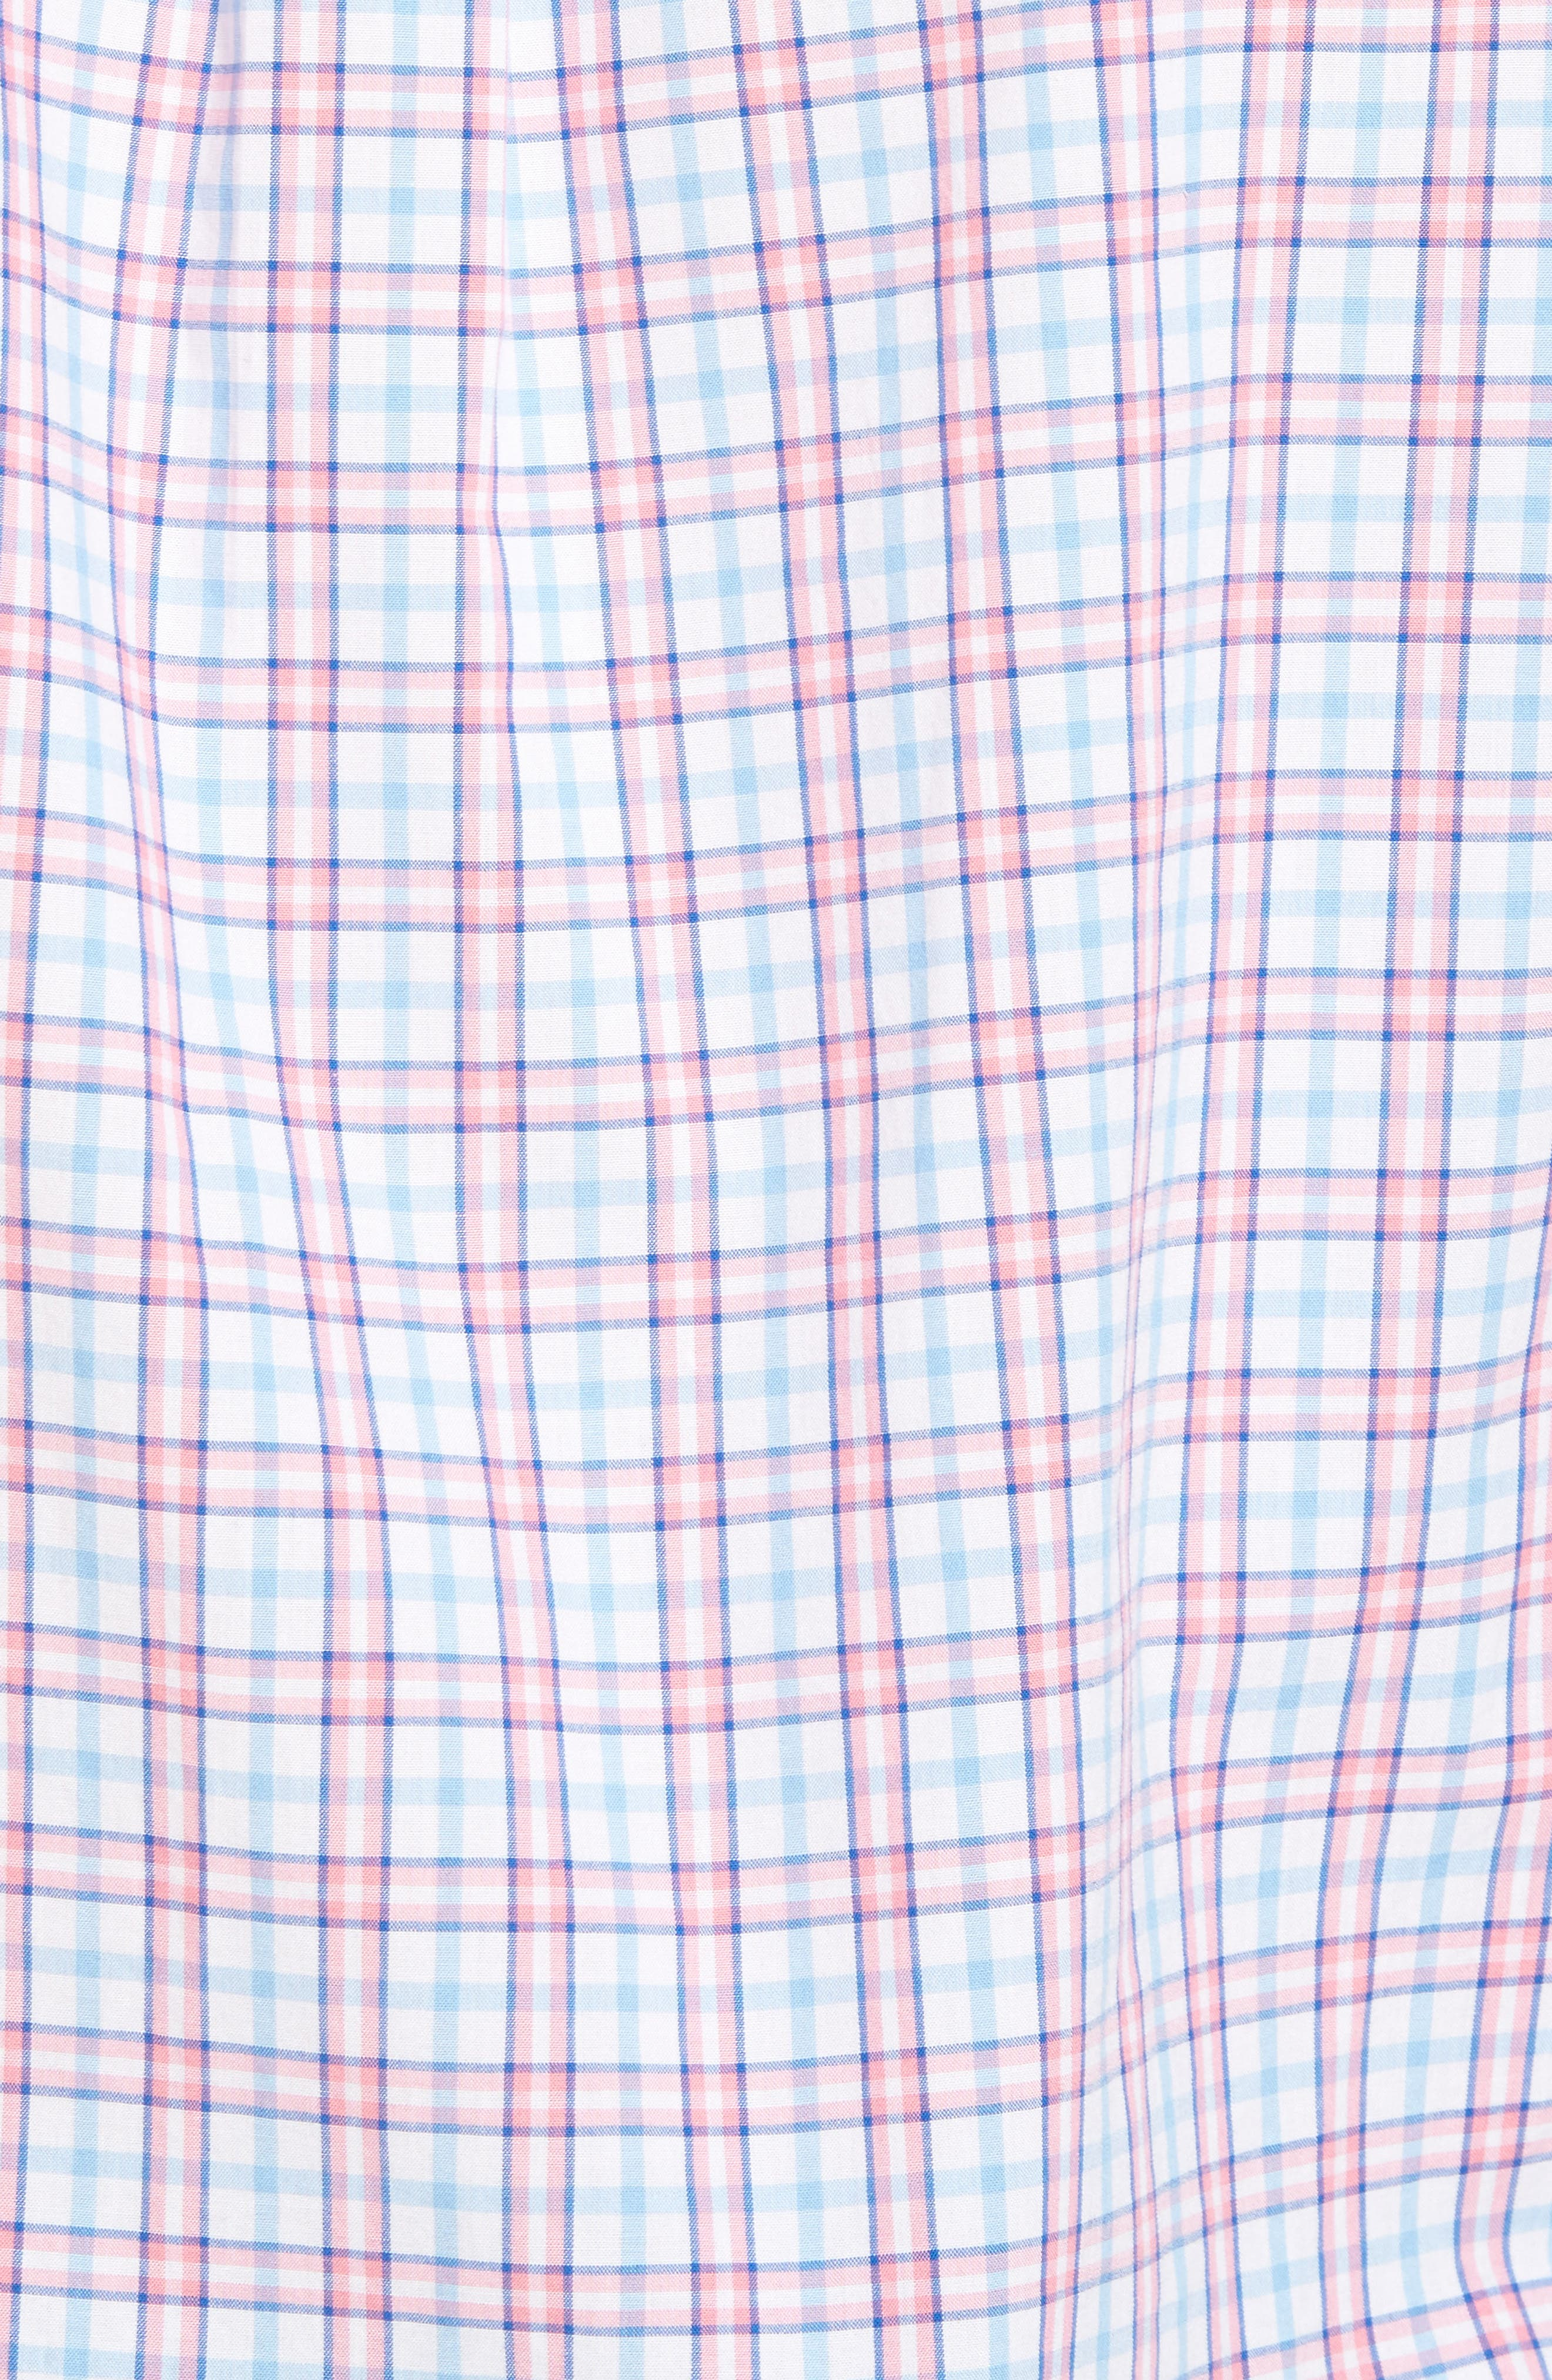 Kennard Tucker Slim Fit Plaid Sport Shirt,                             Alternate thumbnail 4, color,                             Bahama Breeze